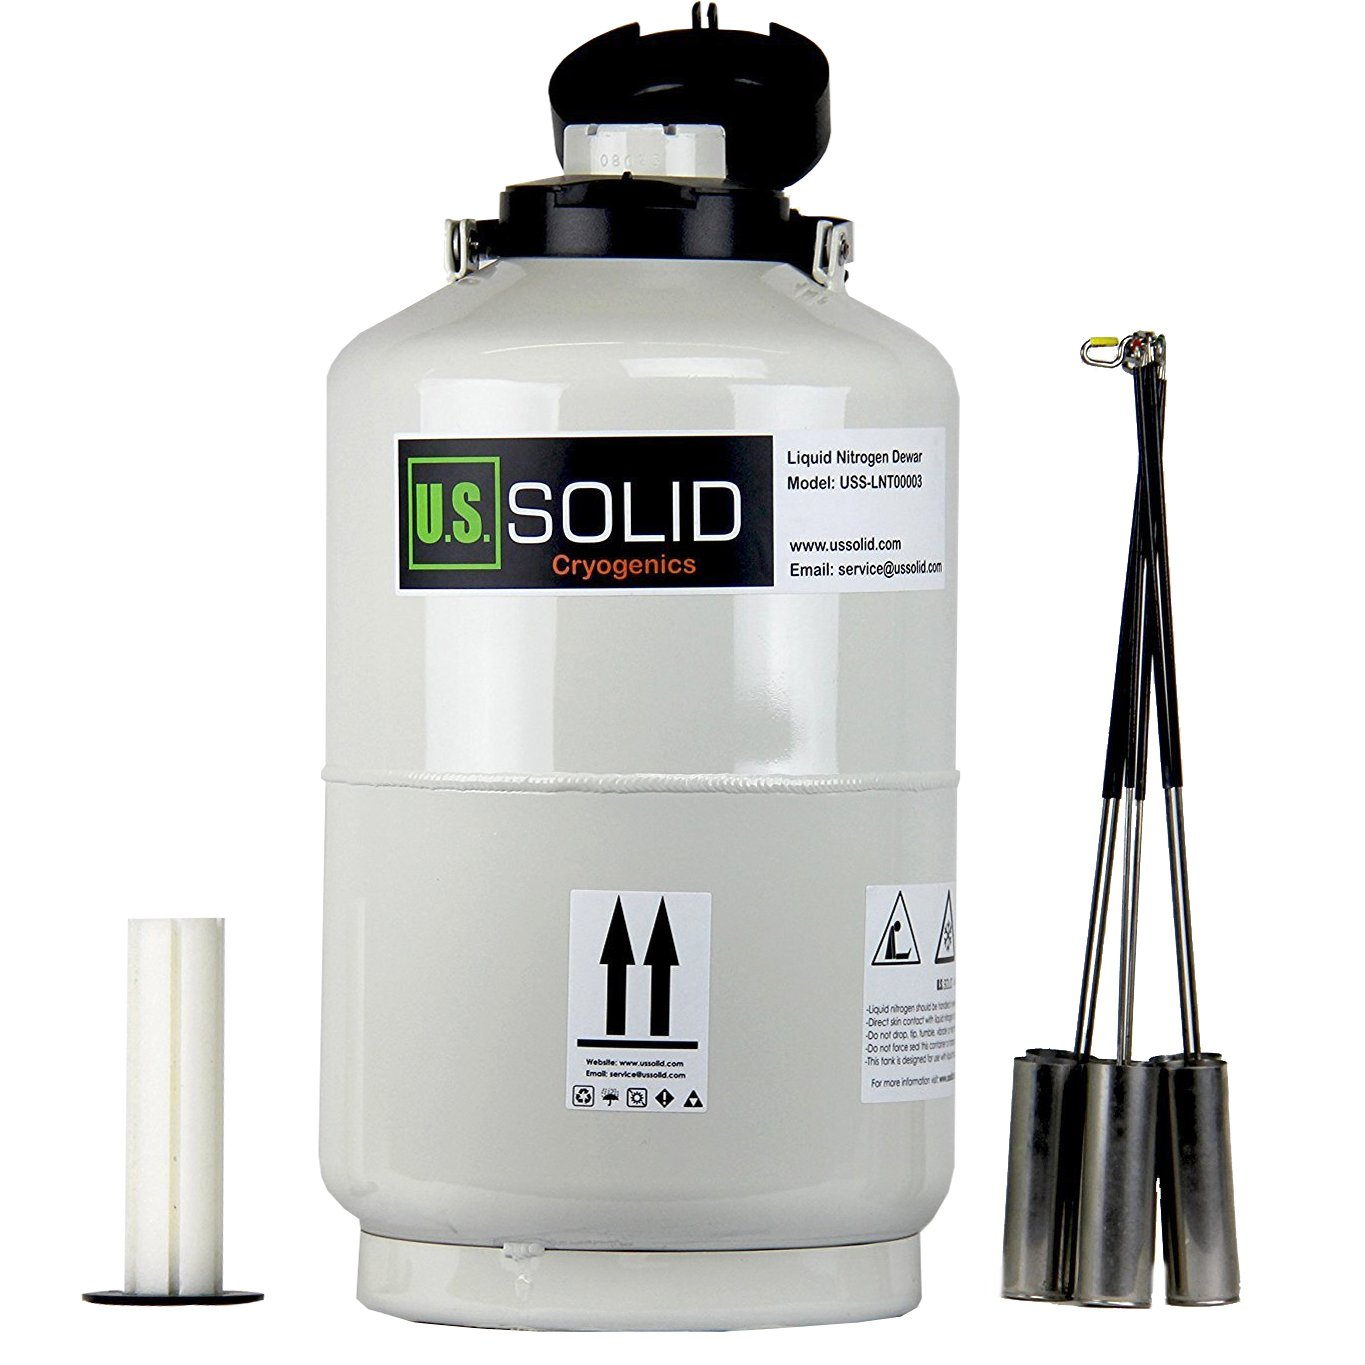 U.S.SOLID 10L Cryogenic Container Liquid Nitrogen LN2 Tank Dewar with Straps 6 Canisters by U.S. Solid